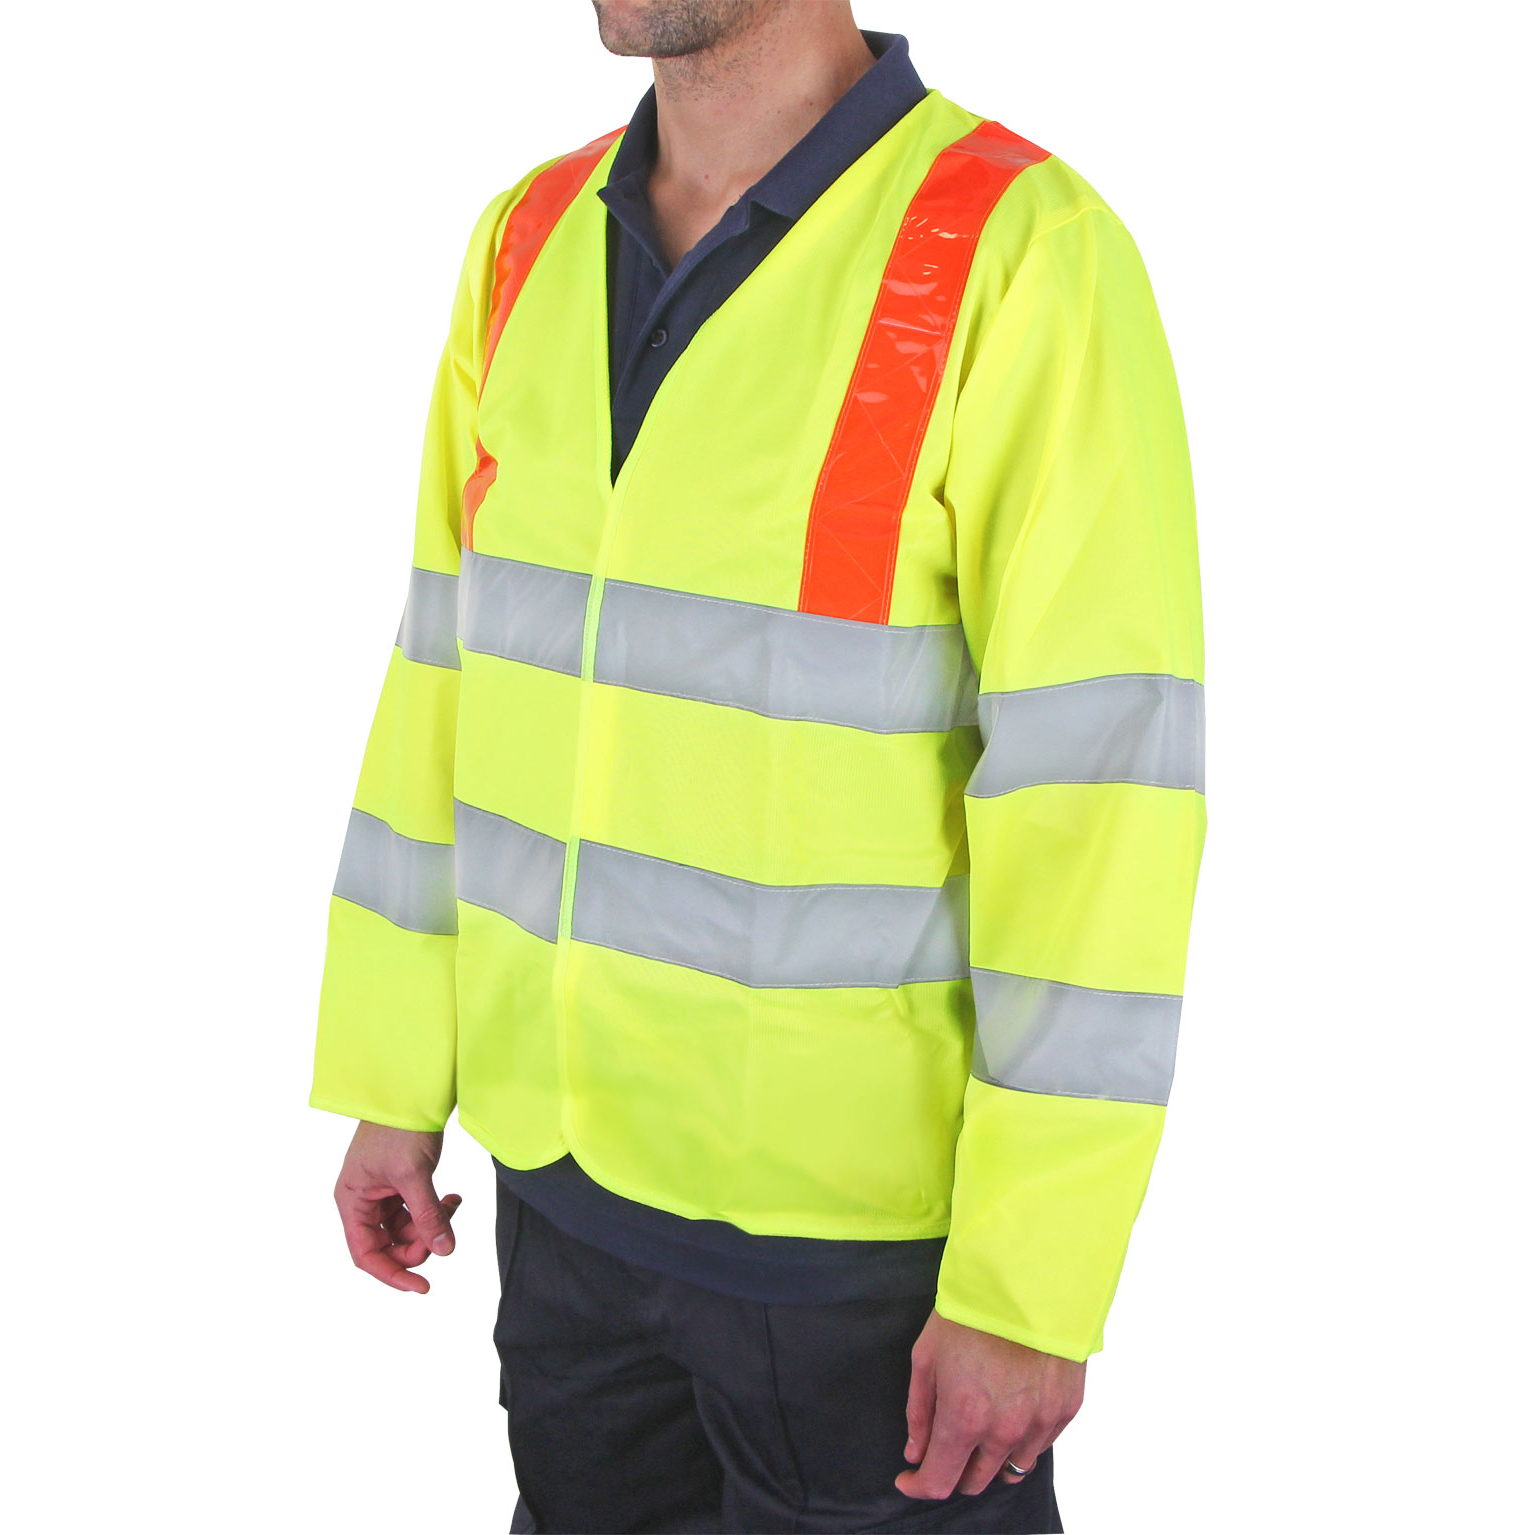 Jerkins B-Seen High Visibility Long Sleeved Jerkin Large Saturn Yellow/Red Ref PKJENG(RT)L *Up to 3 Day Leadtime*